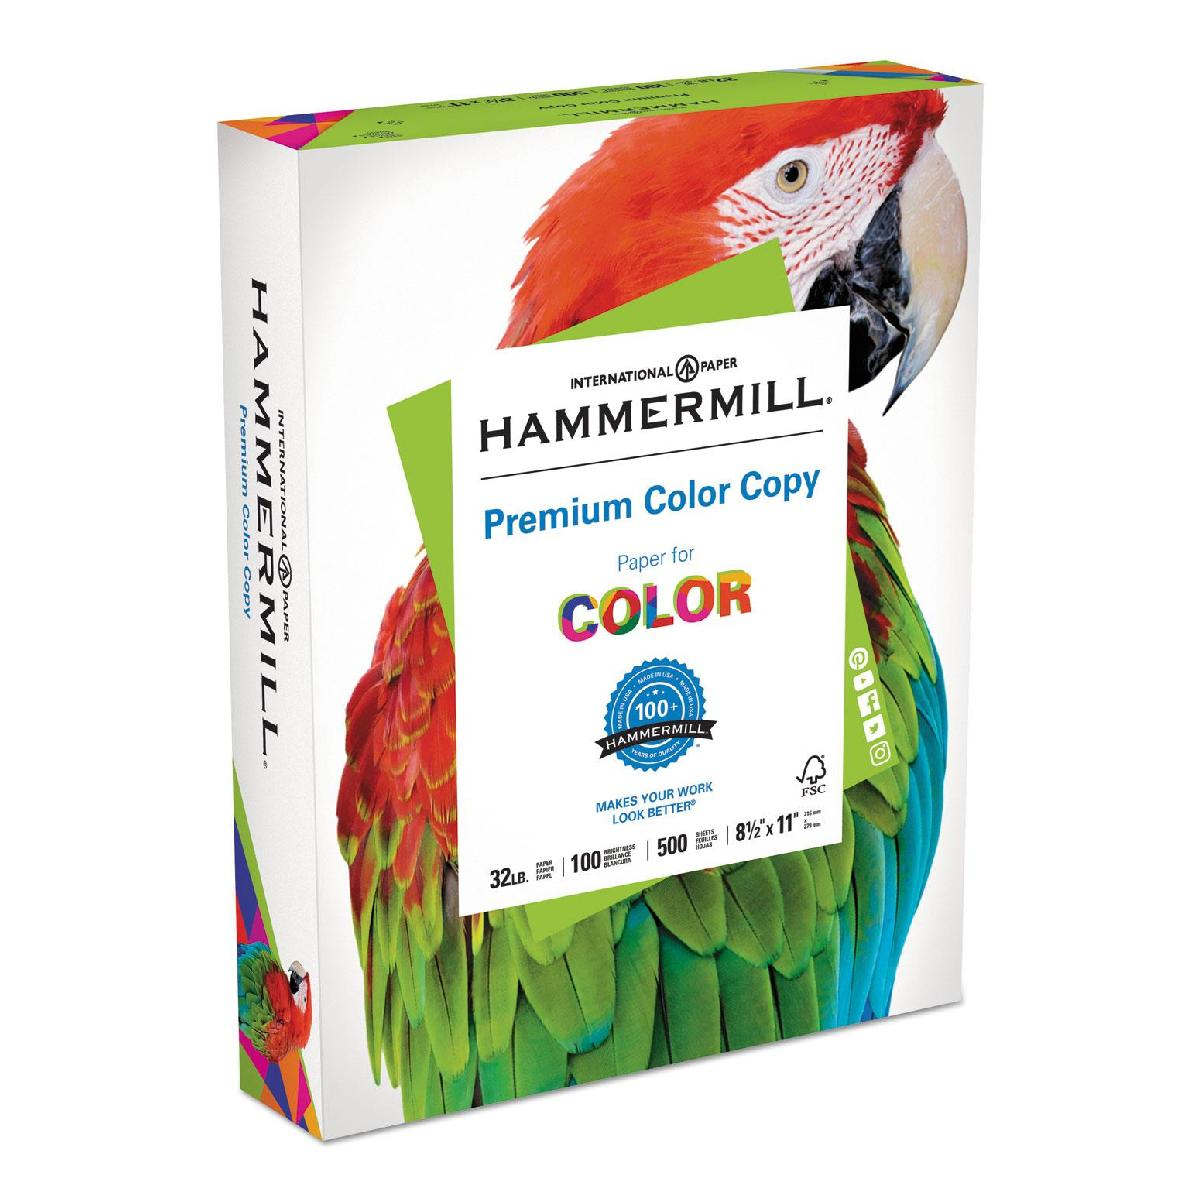 Hammermill® Premium Color Copy Paper 32 lb. 8.5x11 in. 500 Sheets per Ream